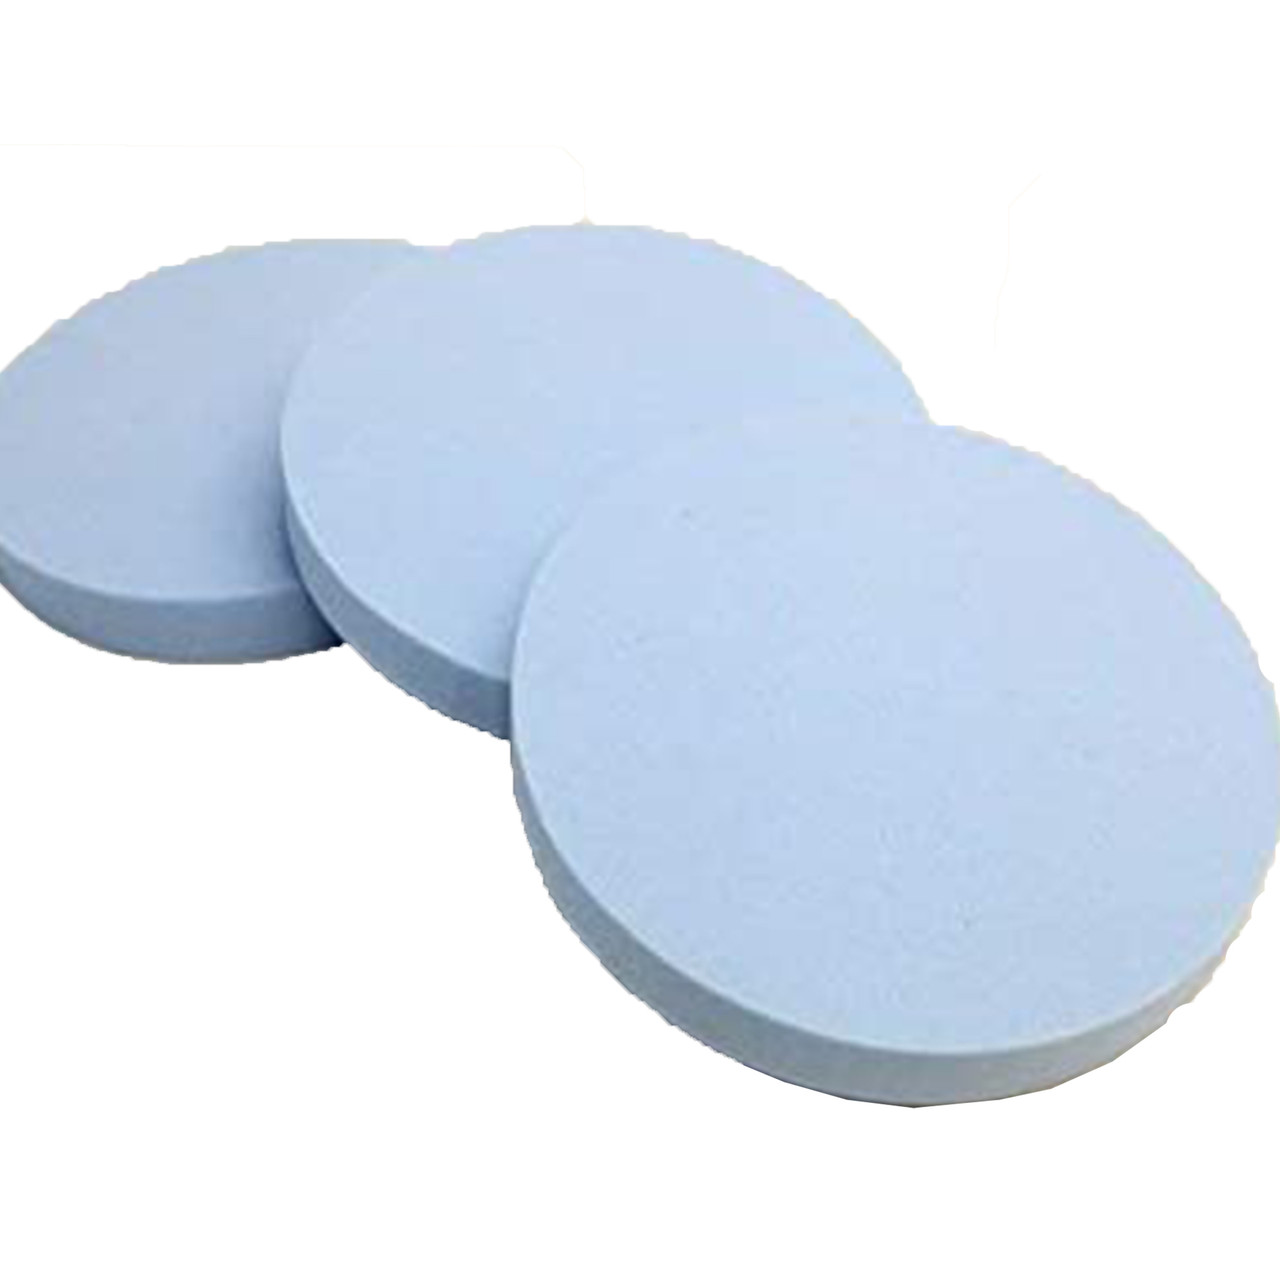 Round foam pads for your  Upholstery, Cushion Pads, Seating, Sofa's, Patio Furniture